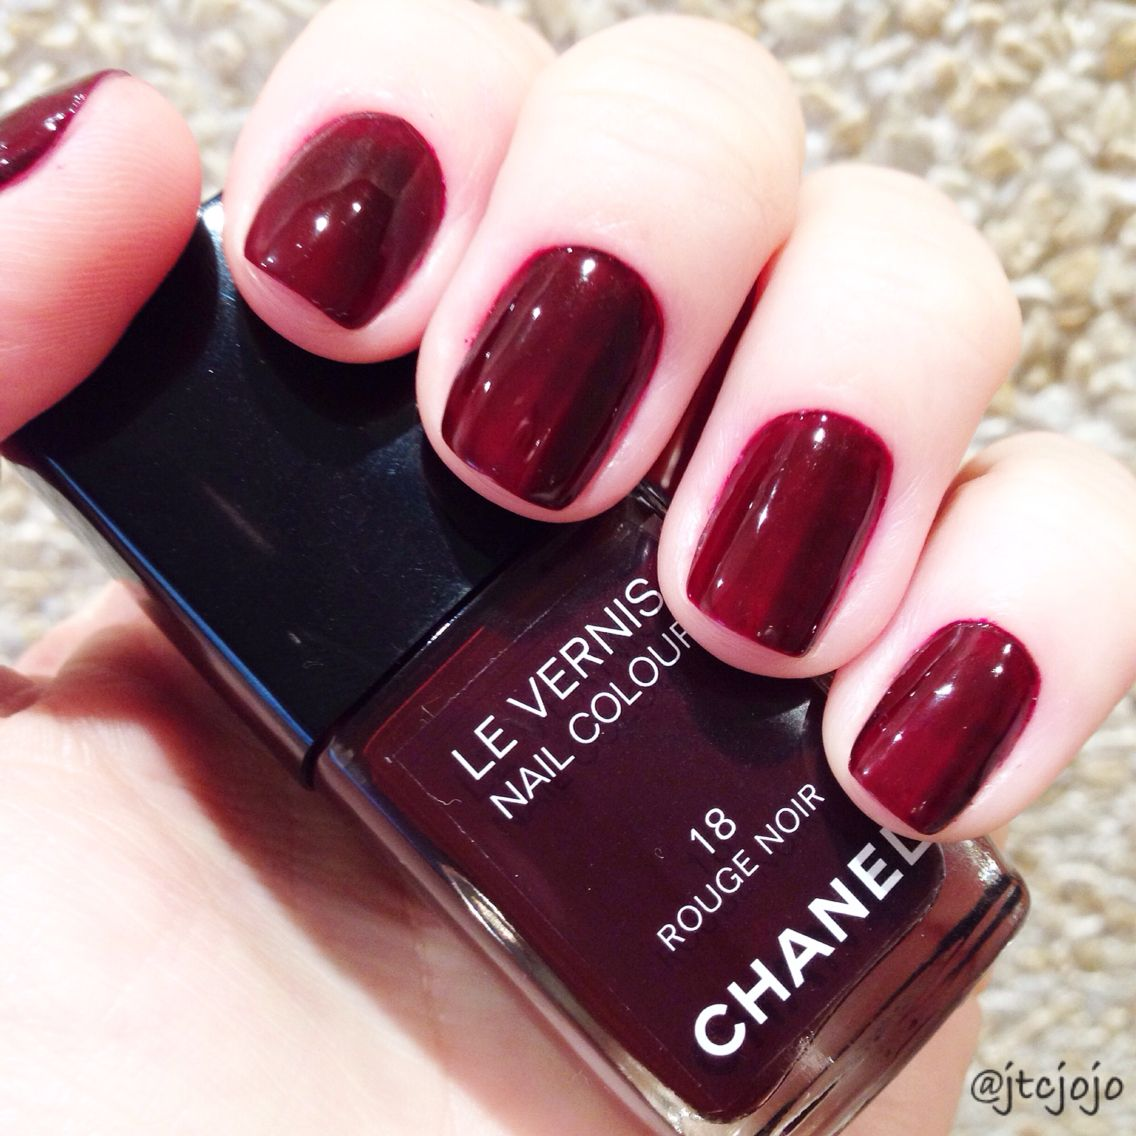 rouge noir 018 chanel nail polish collection pinterest rouge and nail polish collection. Black Bedroom Furniture Sets. Home Design Ideas